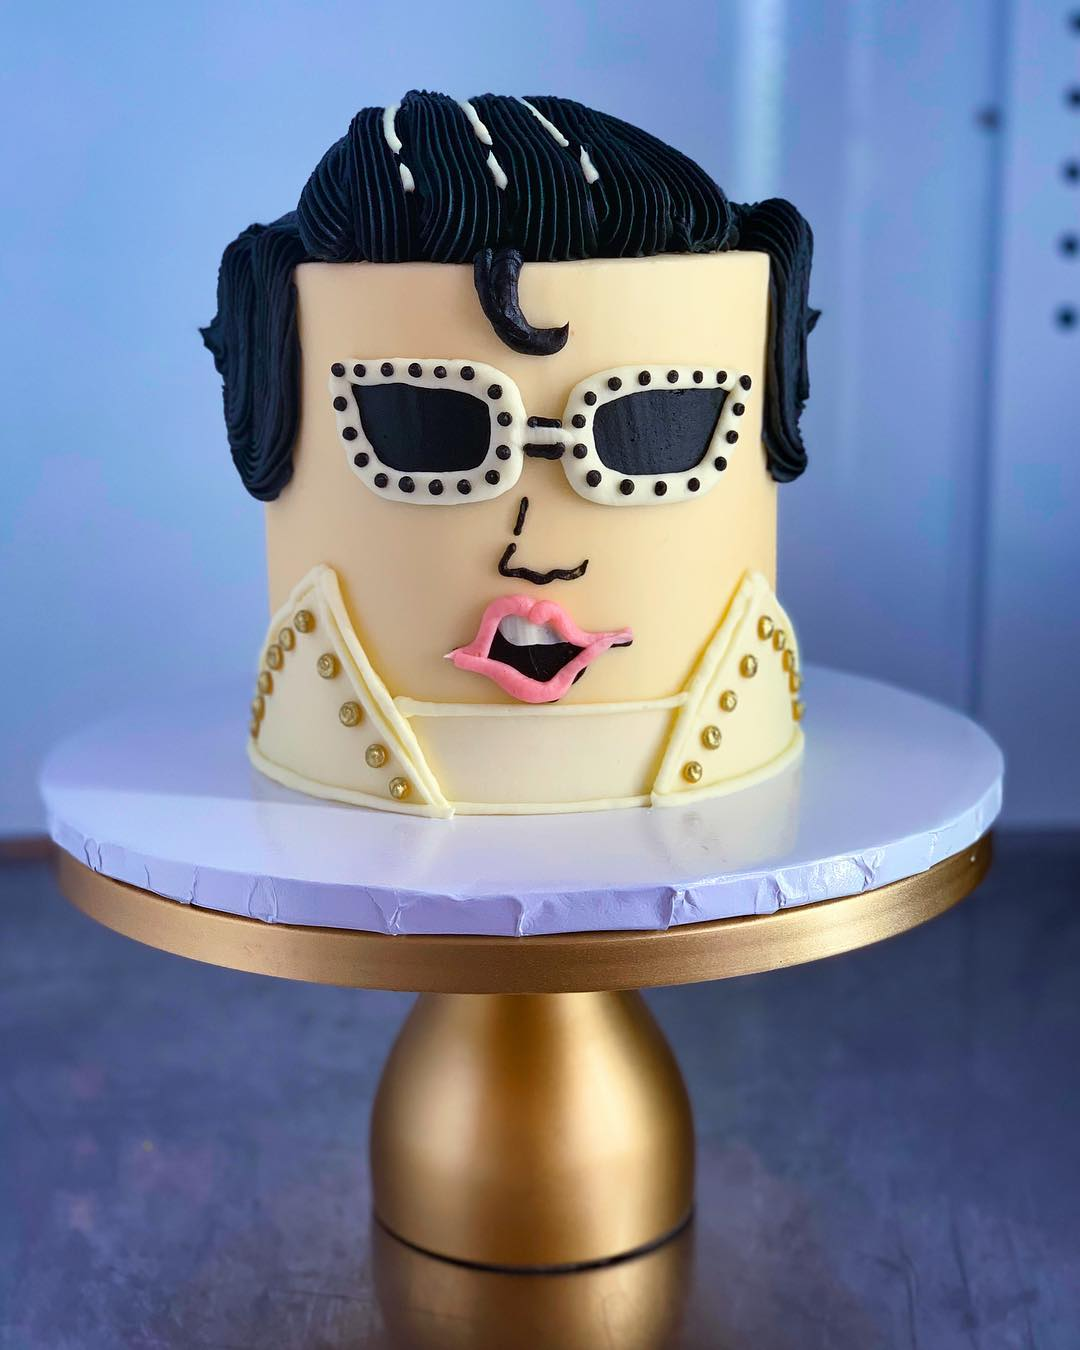 Stupendous Elvis Cake Hayley Cakes And Cookieshayley Cakes And Cookies Birthday Cards Printable Opercafe Filternl